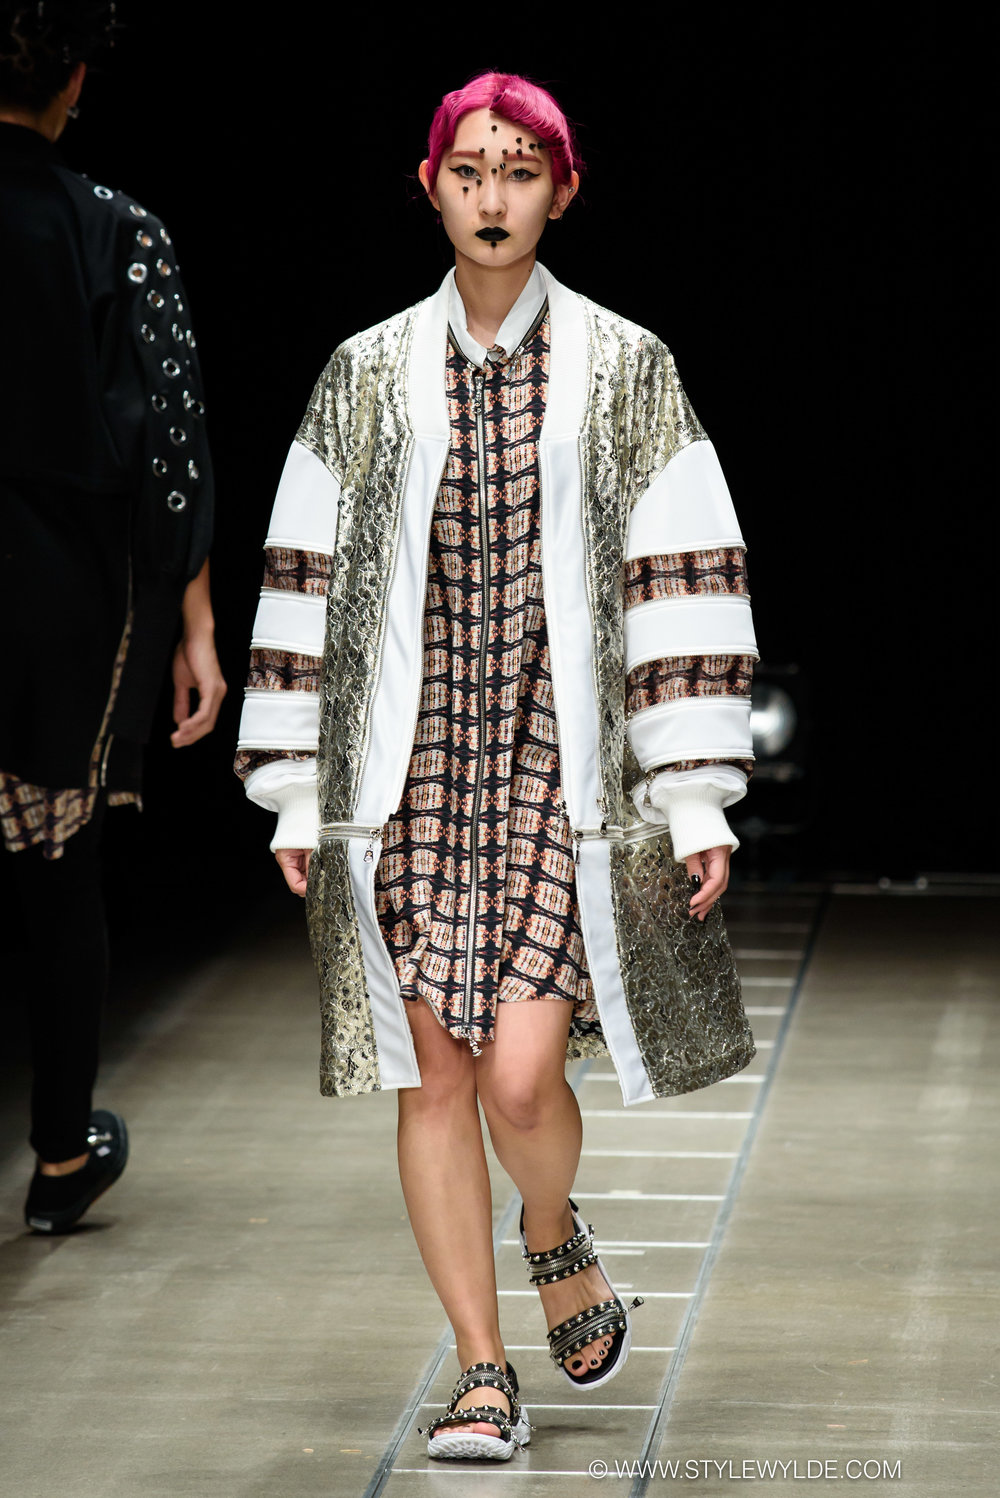 stylewylde_acuod_by_chanu_SS18_runway-7.jpg